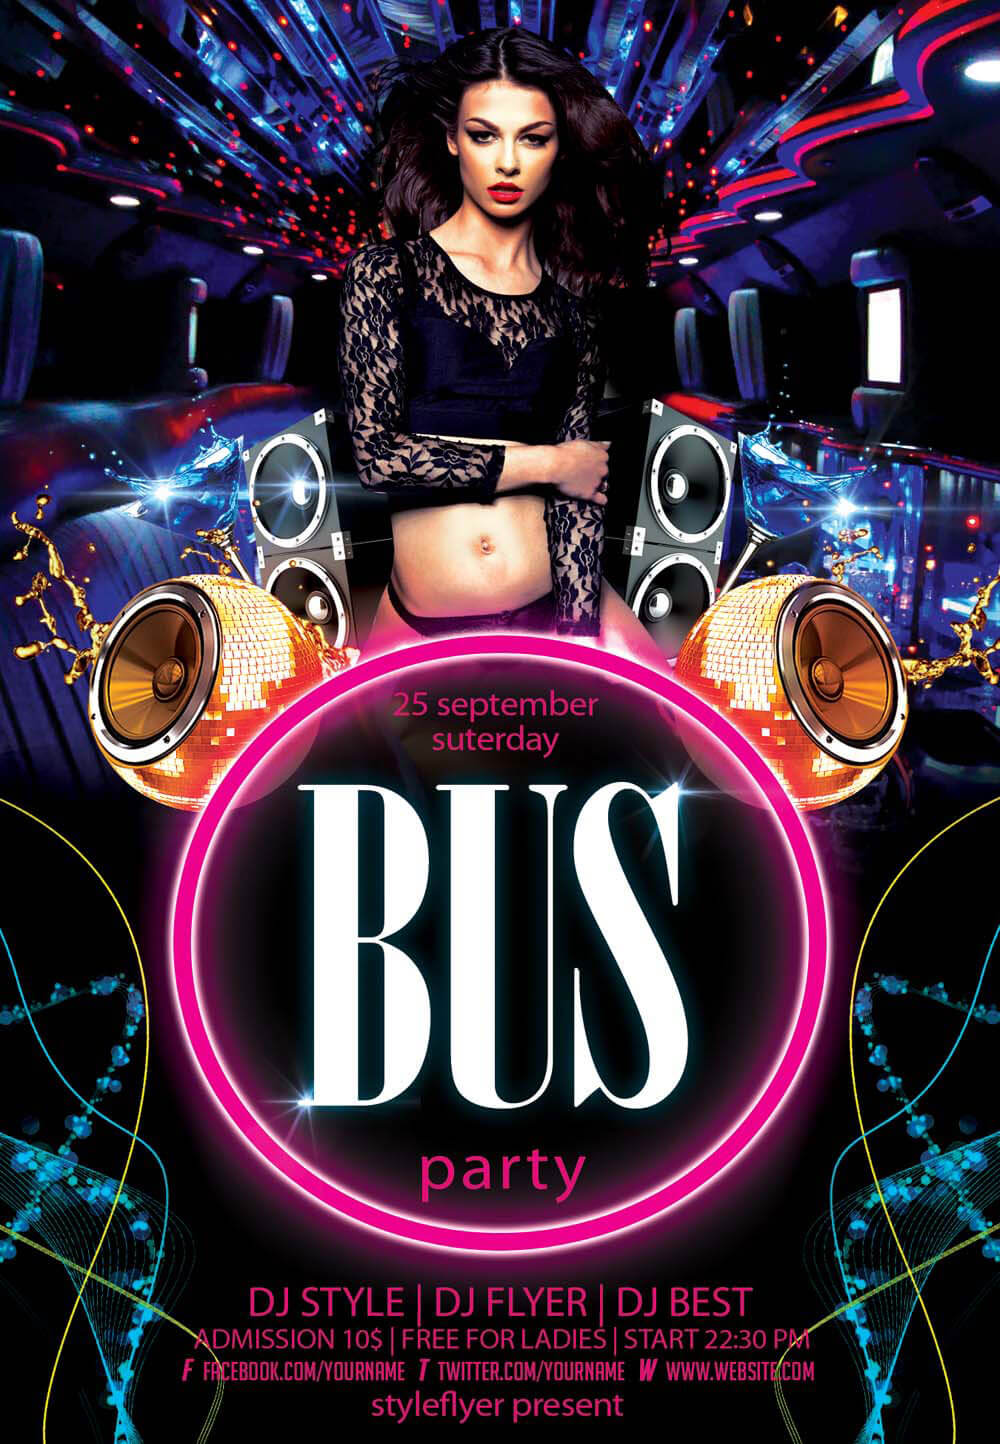 download flyer party bus psd flyer template - Free Psd Flyer Templates